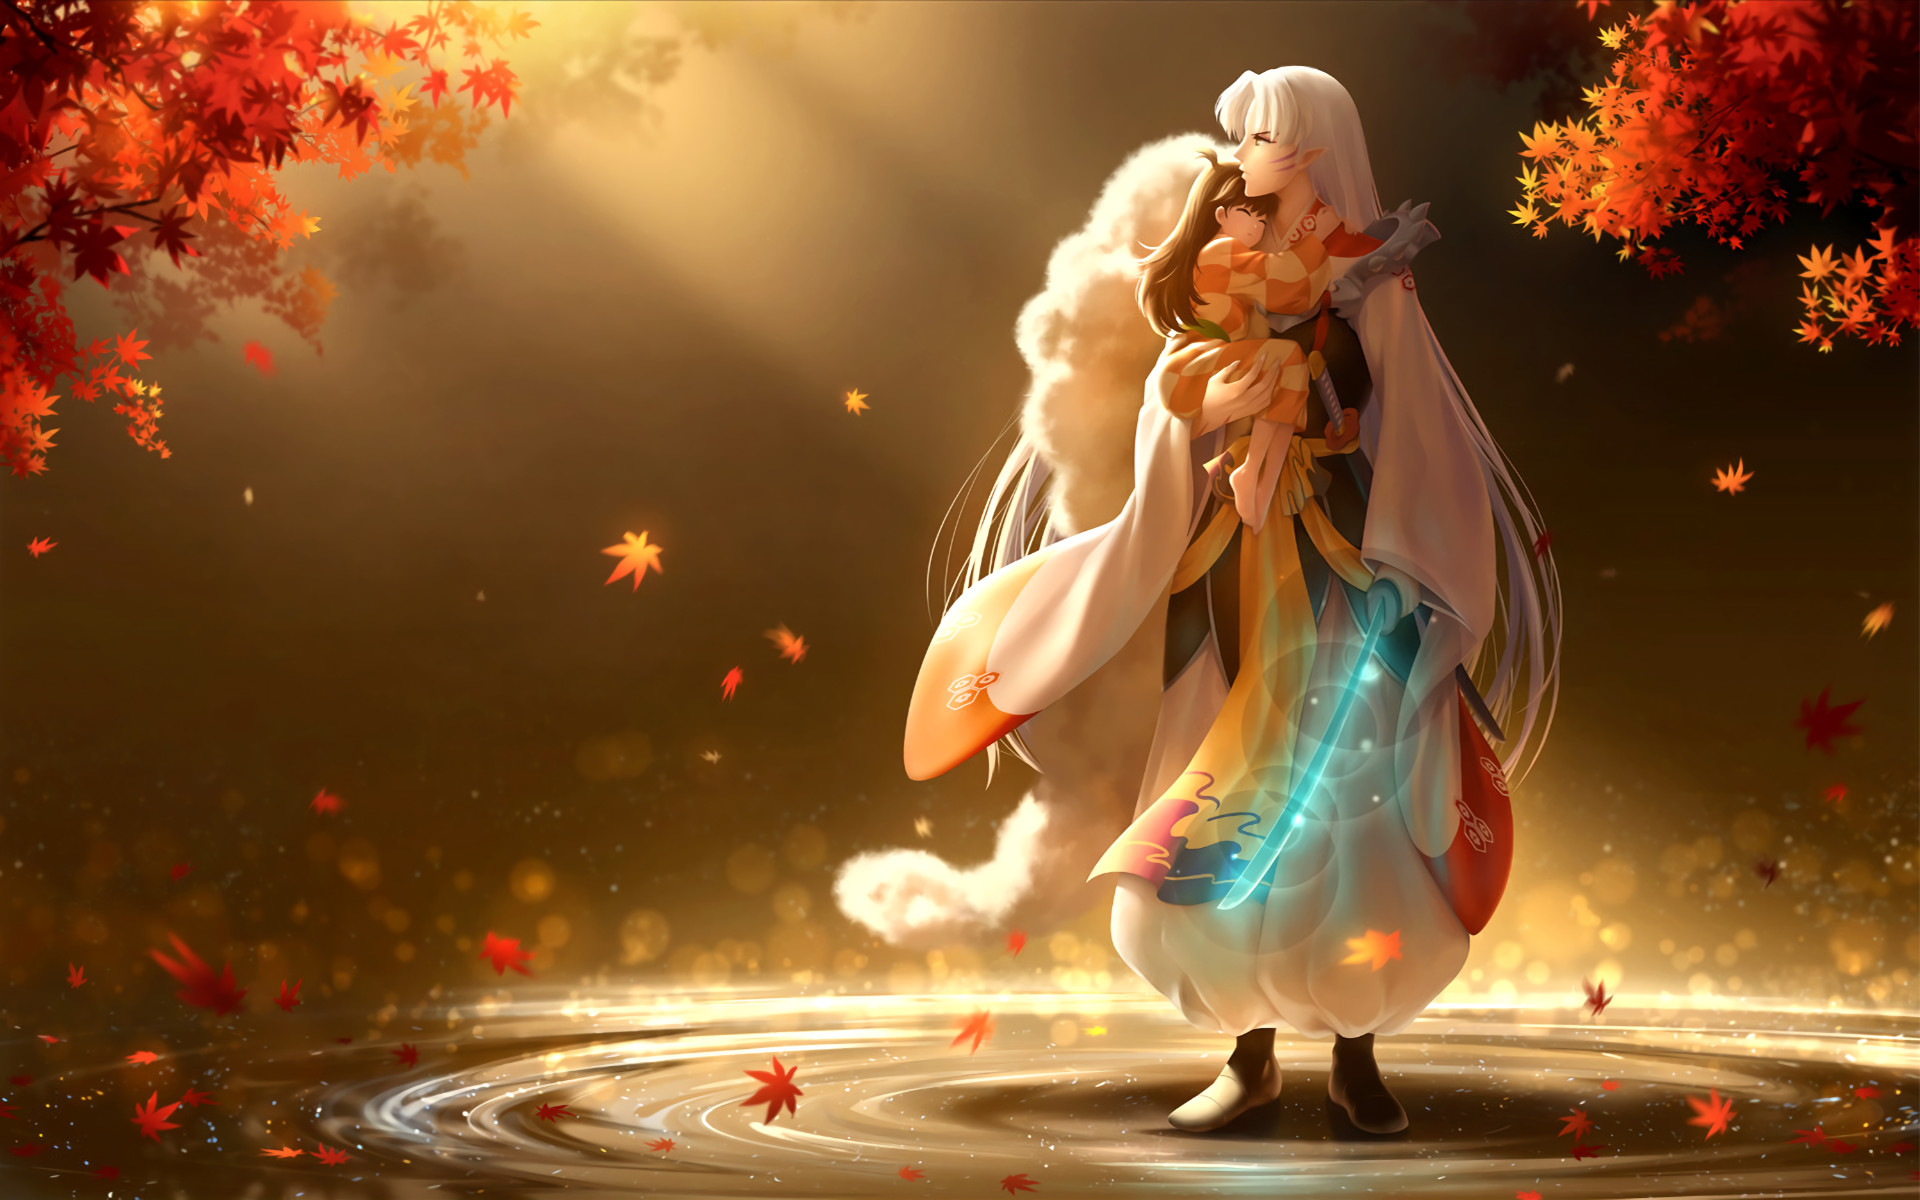 1920x1200 View, download, comment, and rate this  InuYasha Wallpaper -  Wallpaper Abyss